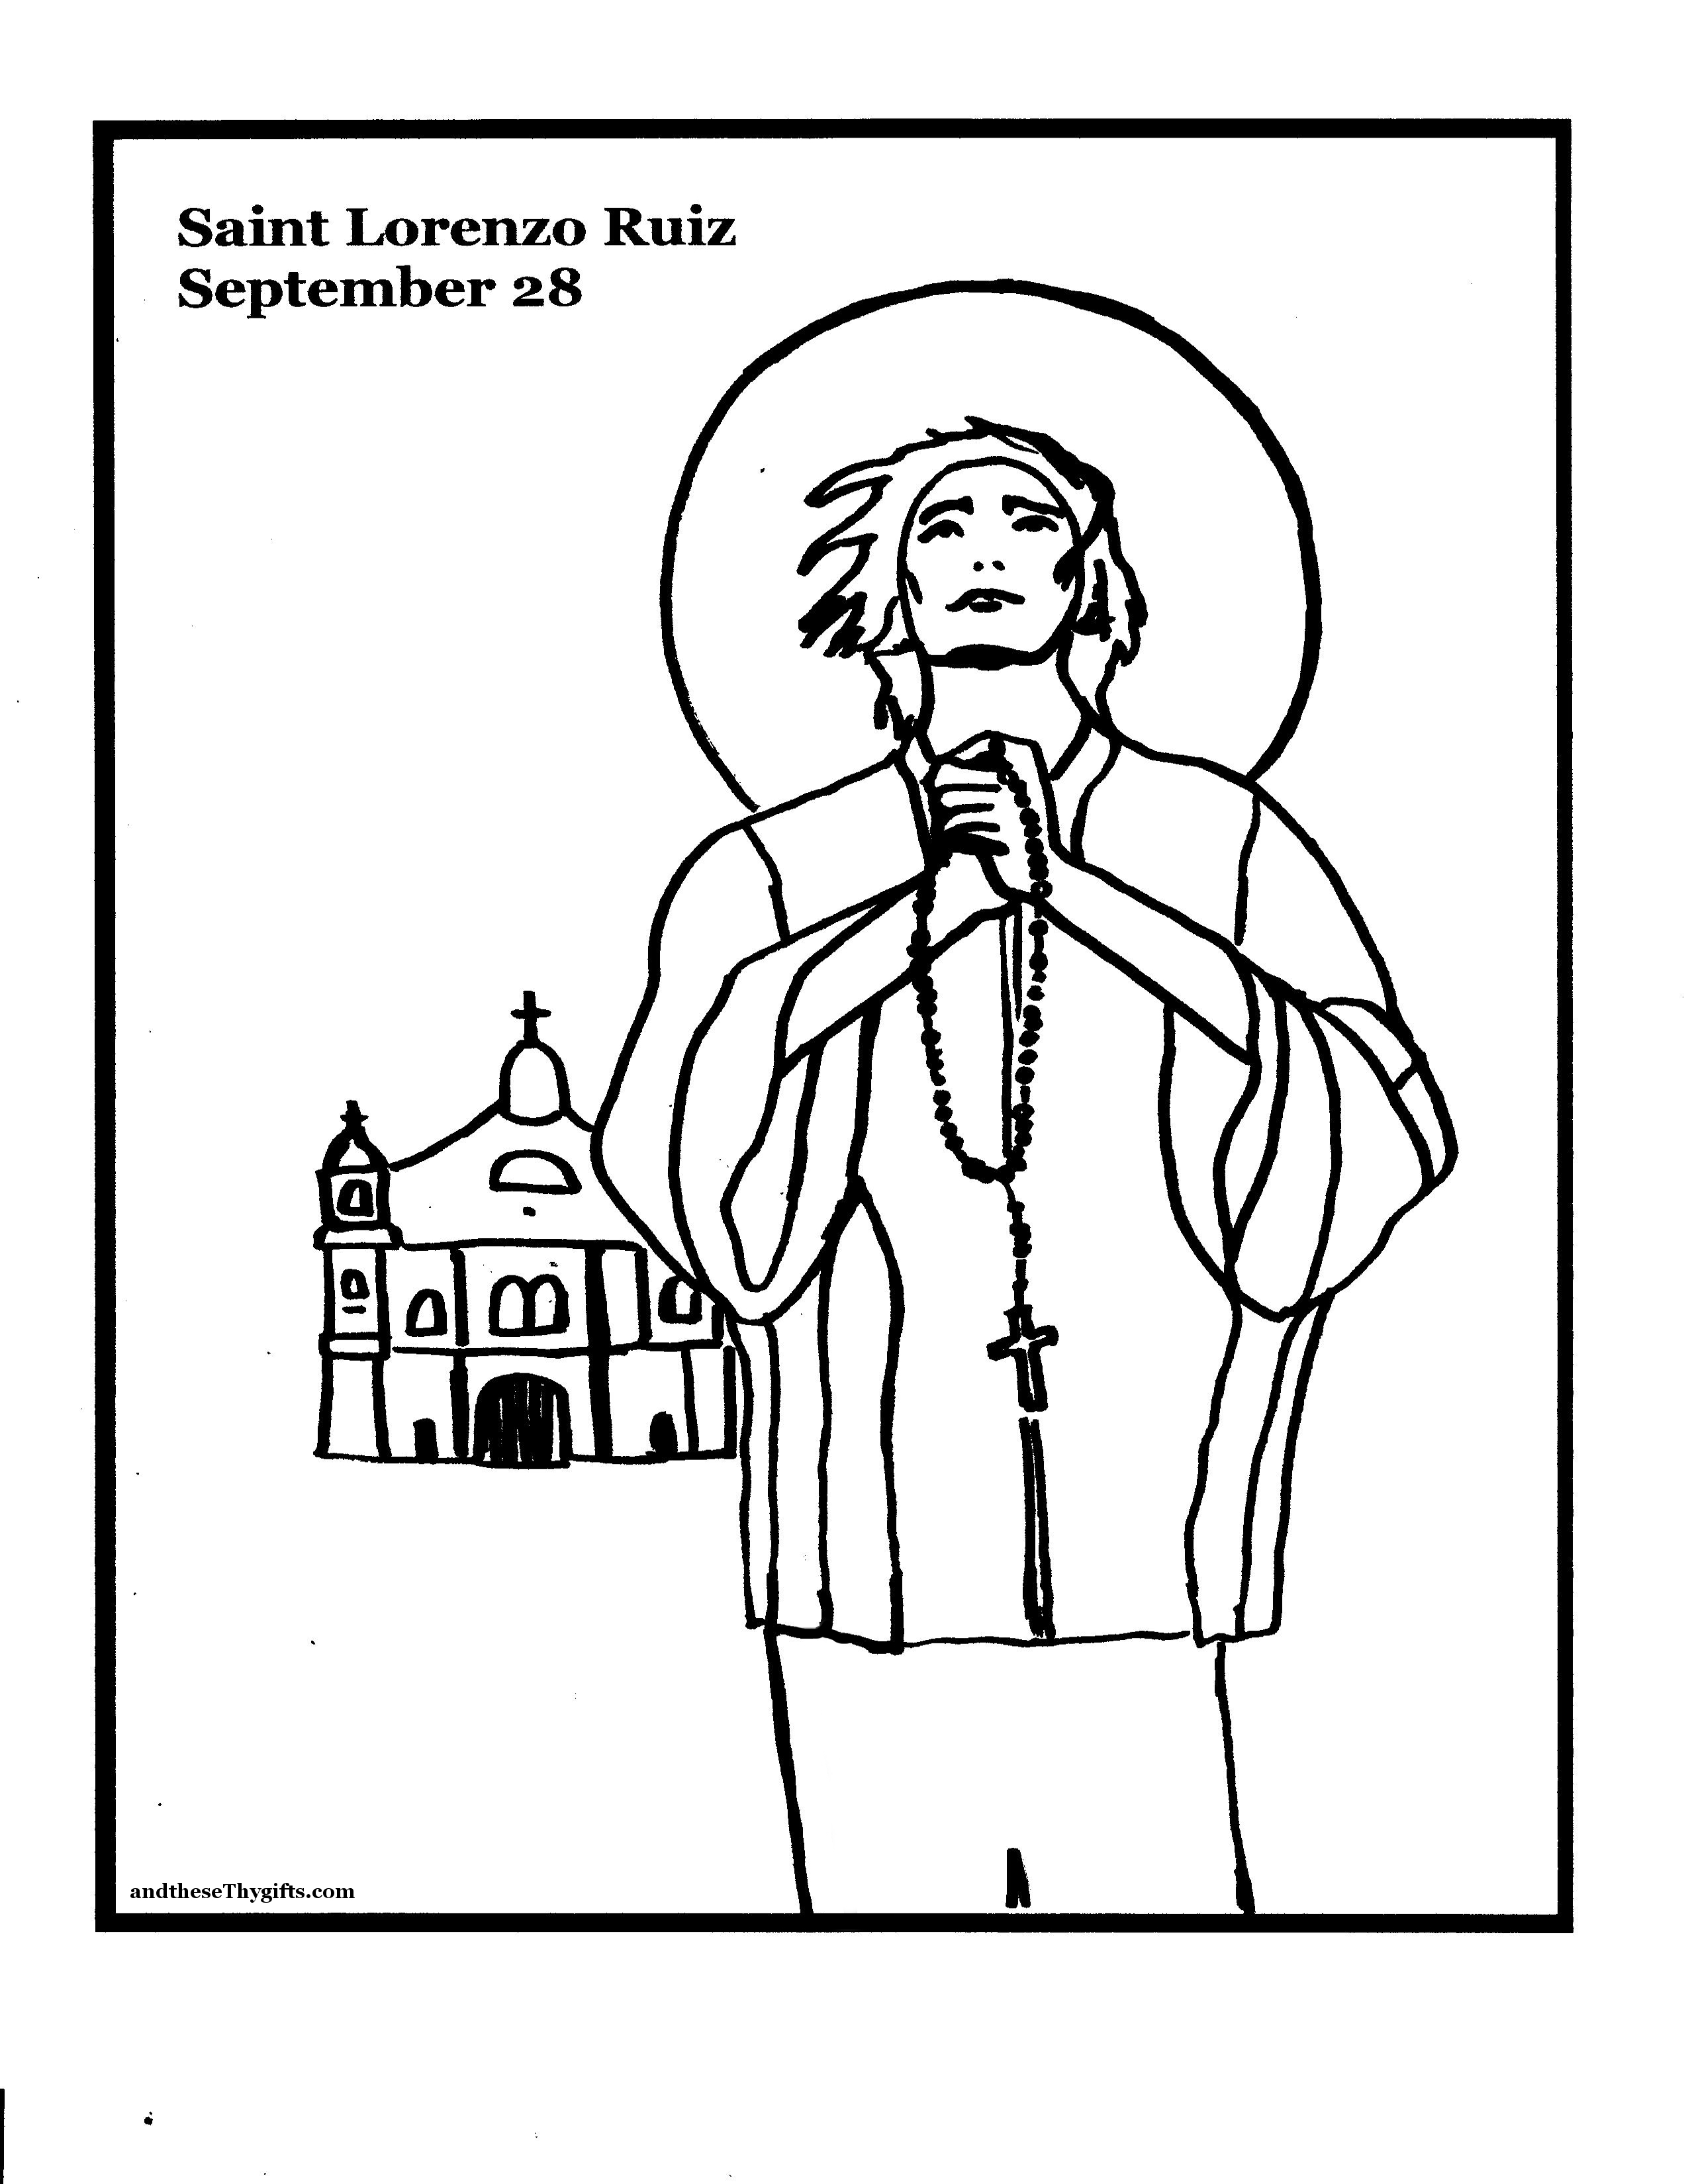 St. Lorenzo Ruiz Coloring Page | ... and these Thy gifts ...